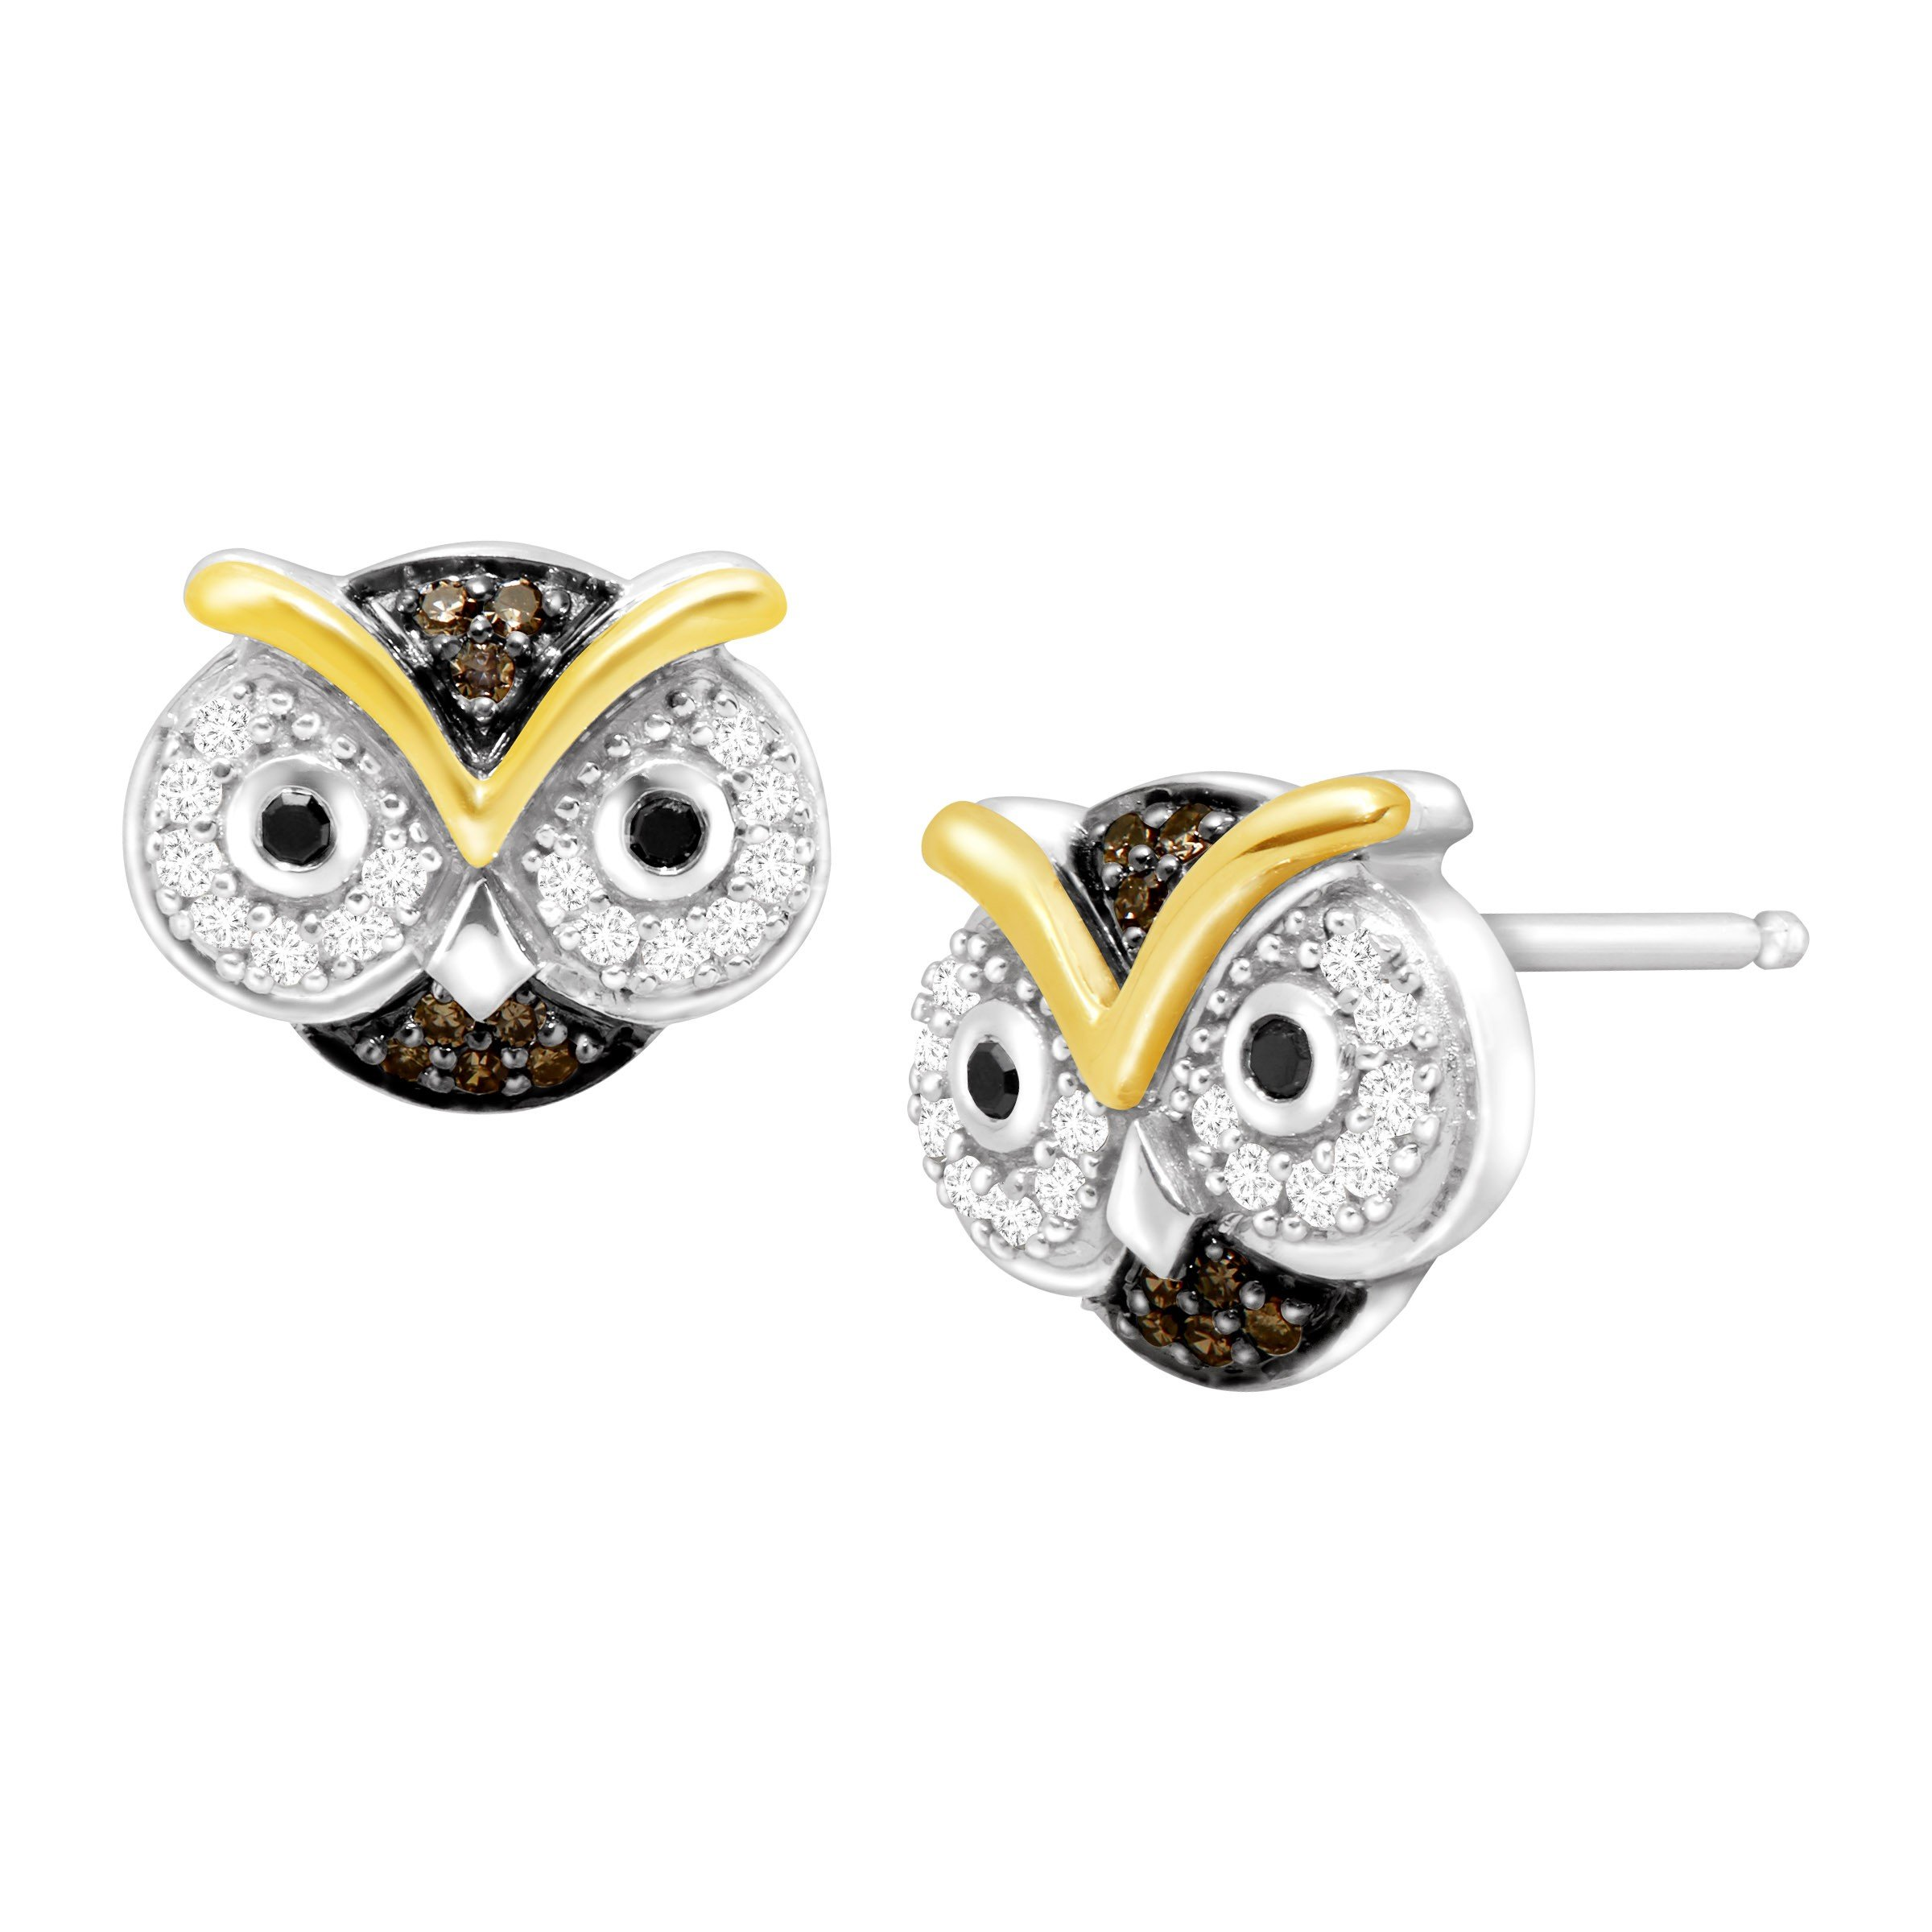 1/5 ct 1/5 ct Black, White & Champagne Diamond Owl Stud Earrings in Sterling Silver & 10K Gold